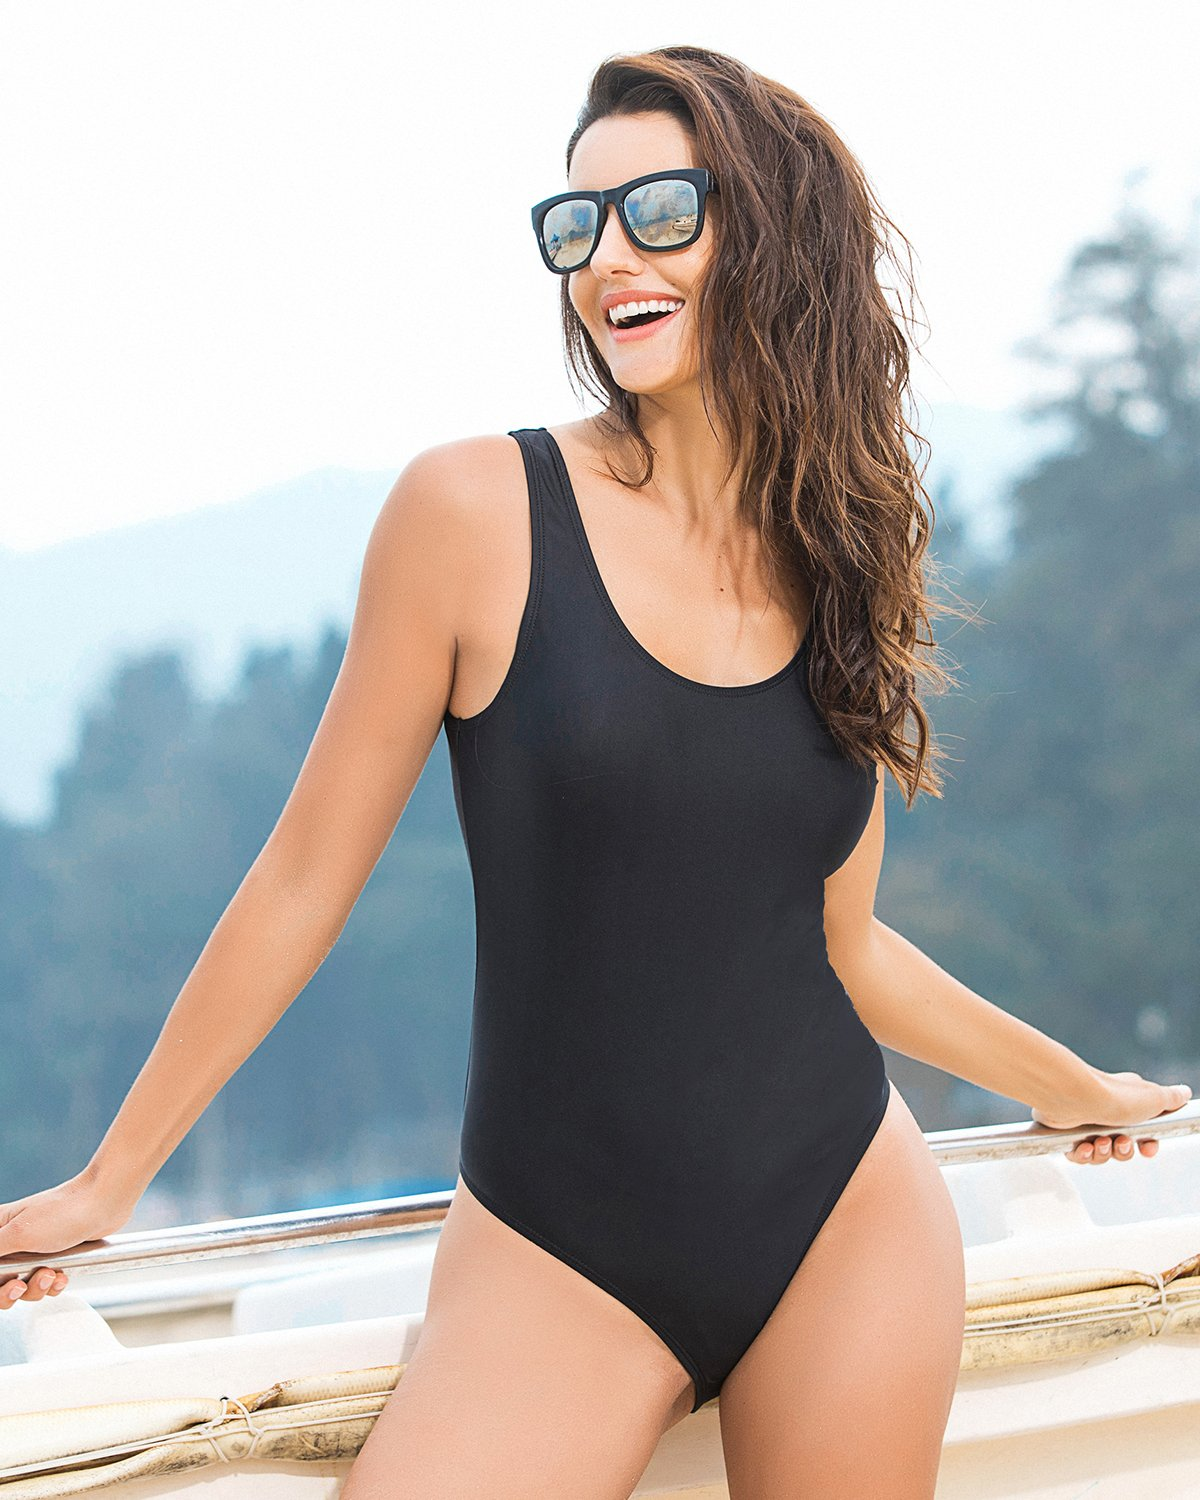 Funnygirl Women's Sexy Retro One Piece Swimsuit High Cut Backless Beach Swimwear Bathing Suit Black Medium by Funnygirl (Image #2)